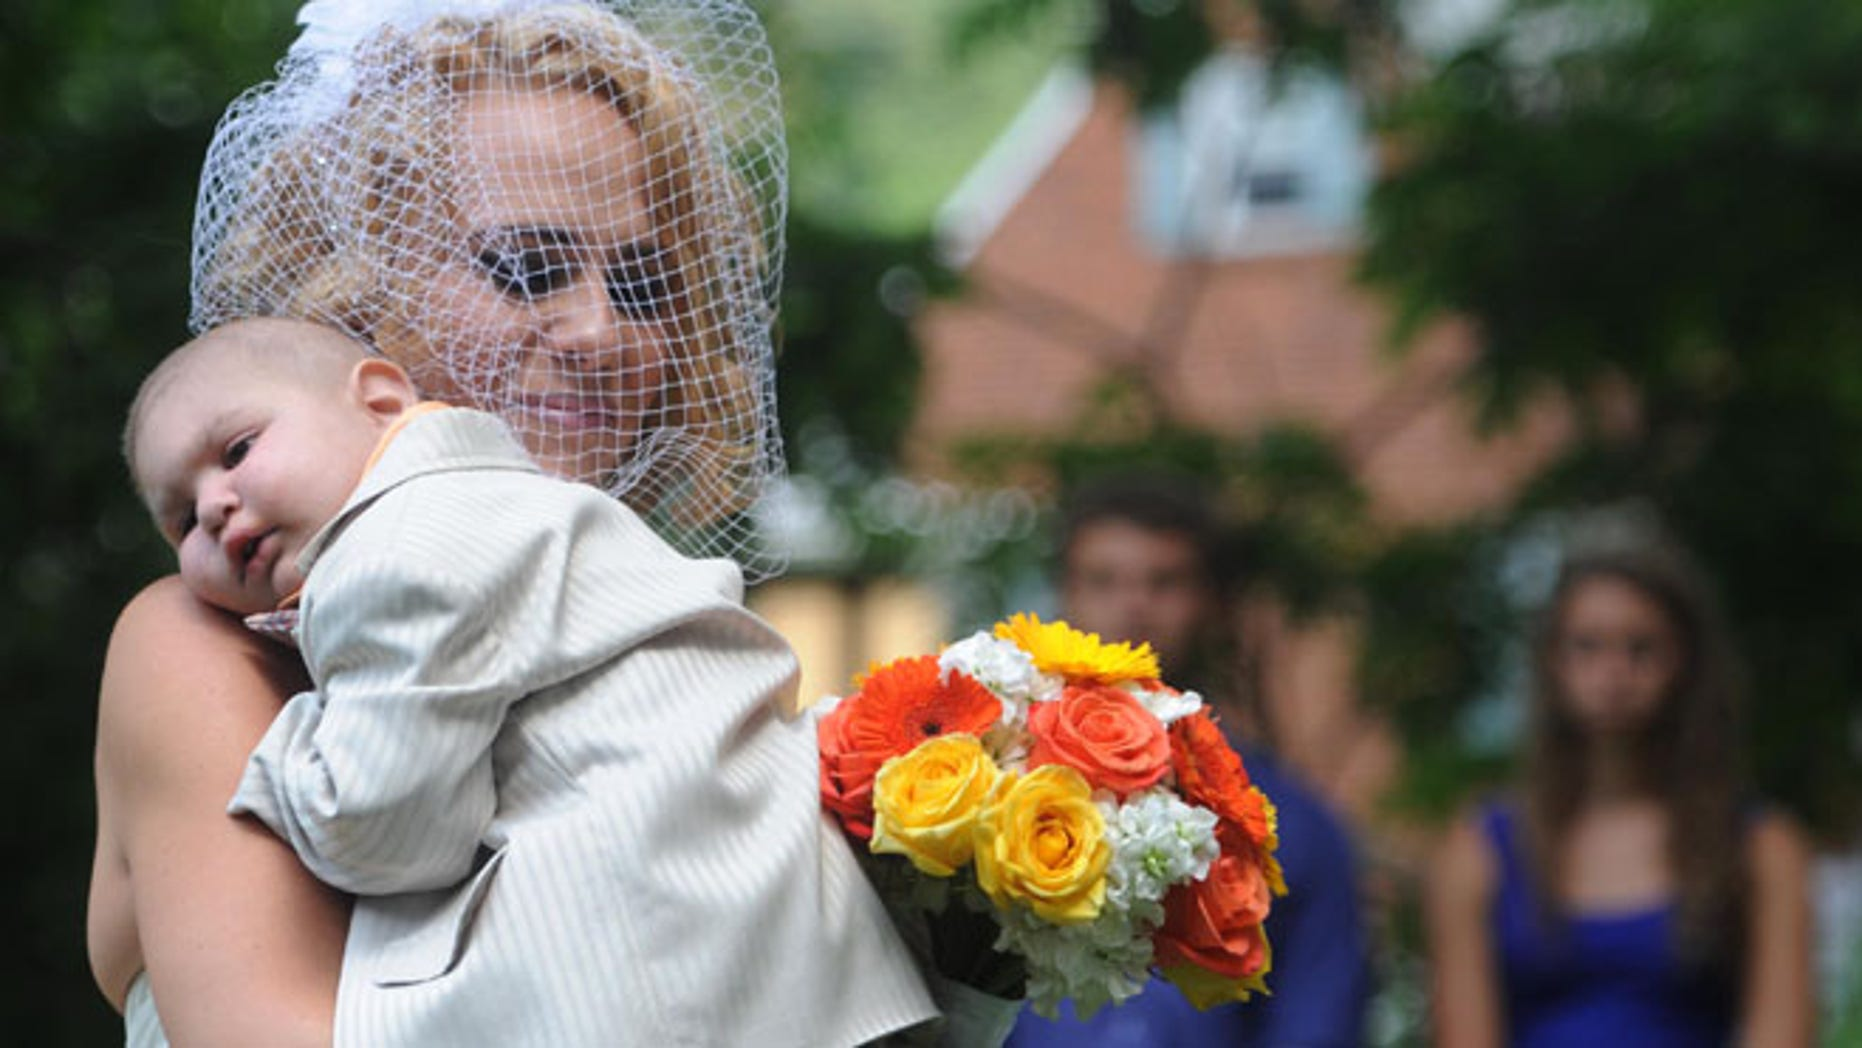 Aug. 3: Christine Swidorsky carries her son and the couple's best man, Logan Stevenson, down the aisle during the wedding ceremony in Jeannette, Pa.